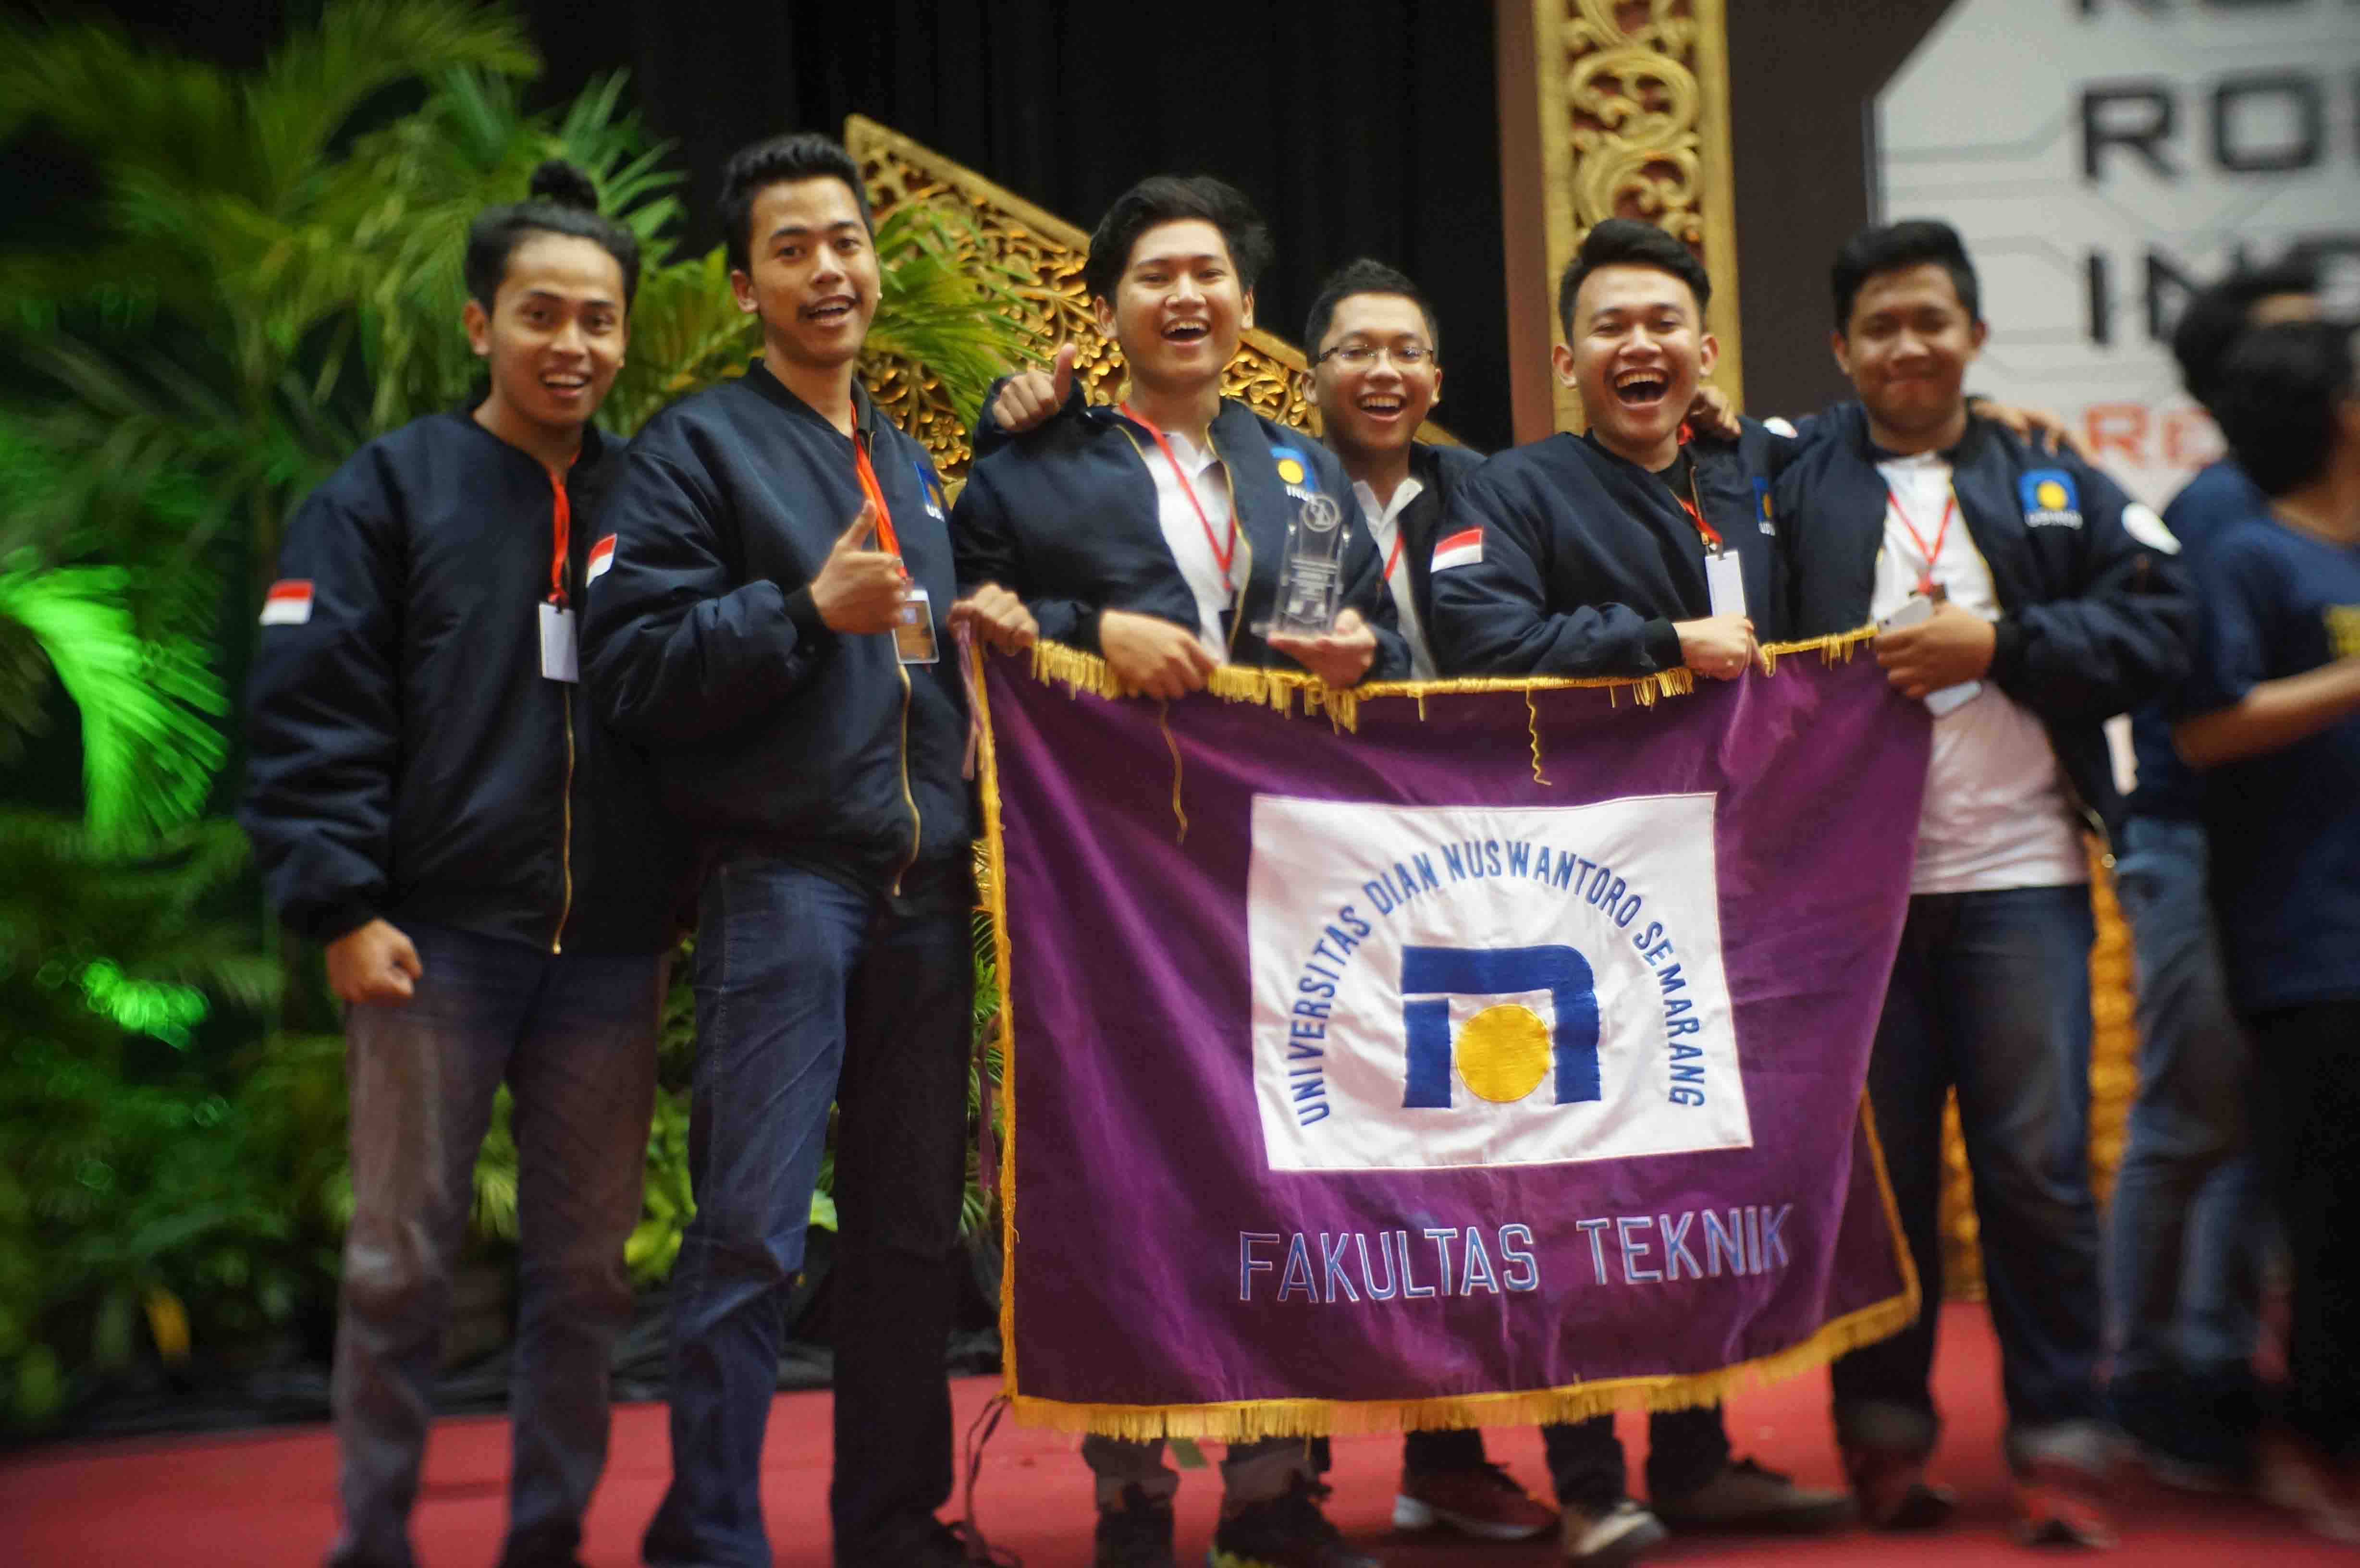 WHILLIE TEAM OF UDINUS FT WINS 1ST CHAMPION OF KRAI 2017 REGIONAL 3